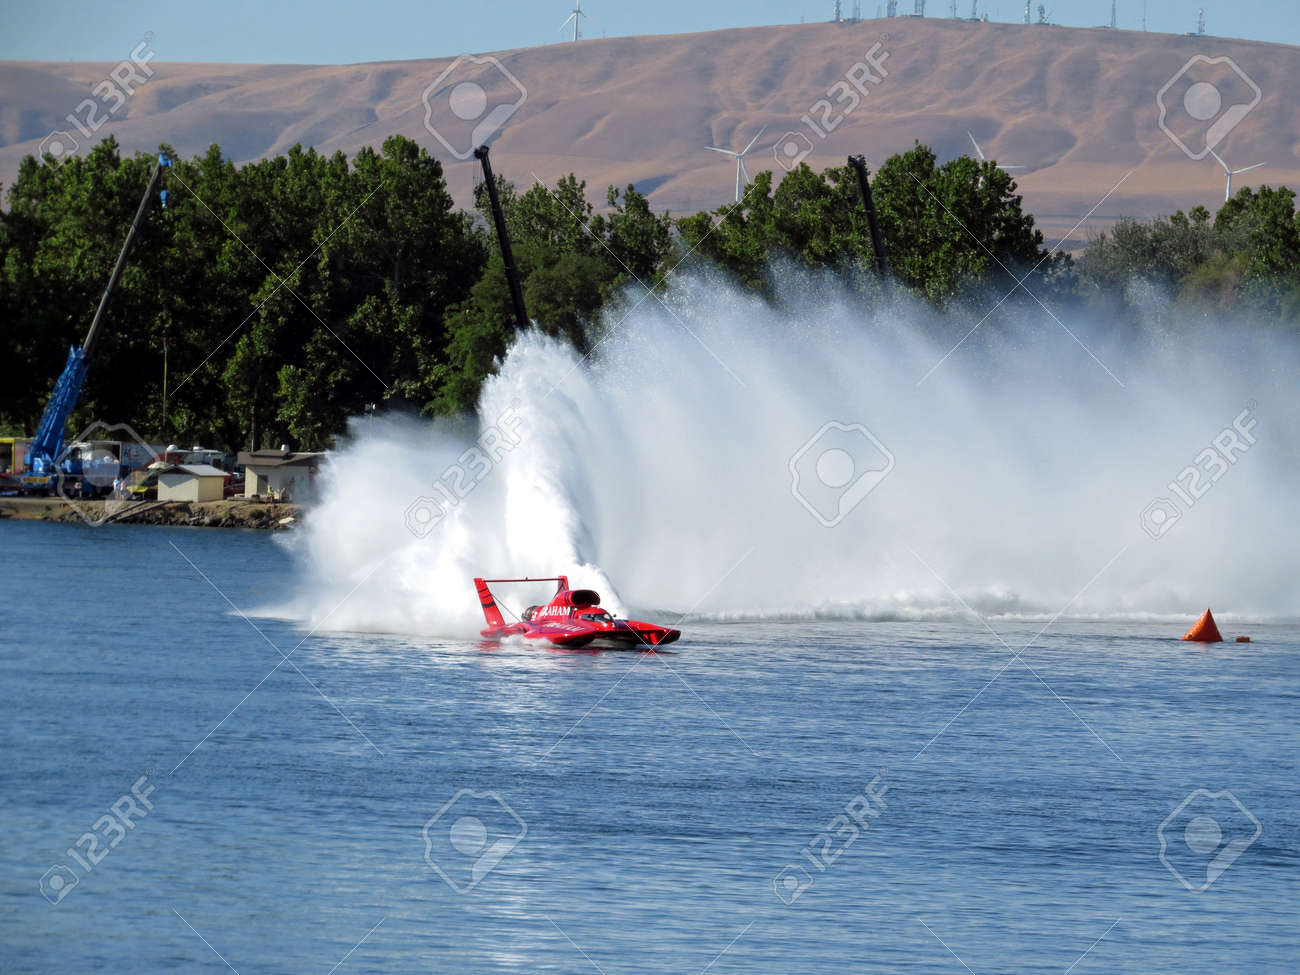 H1 Unlimited Hydroplane Roostertail